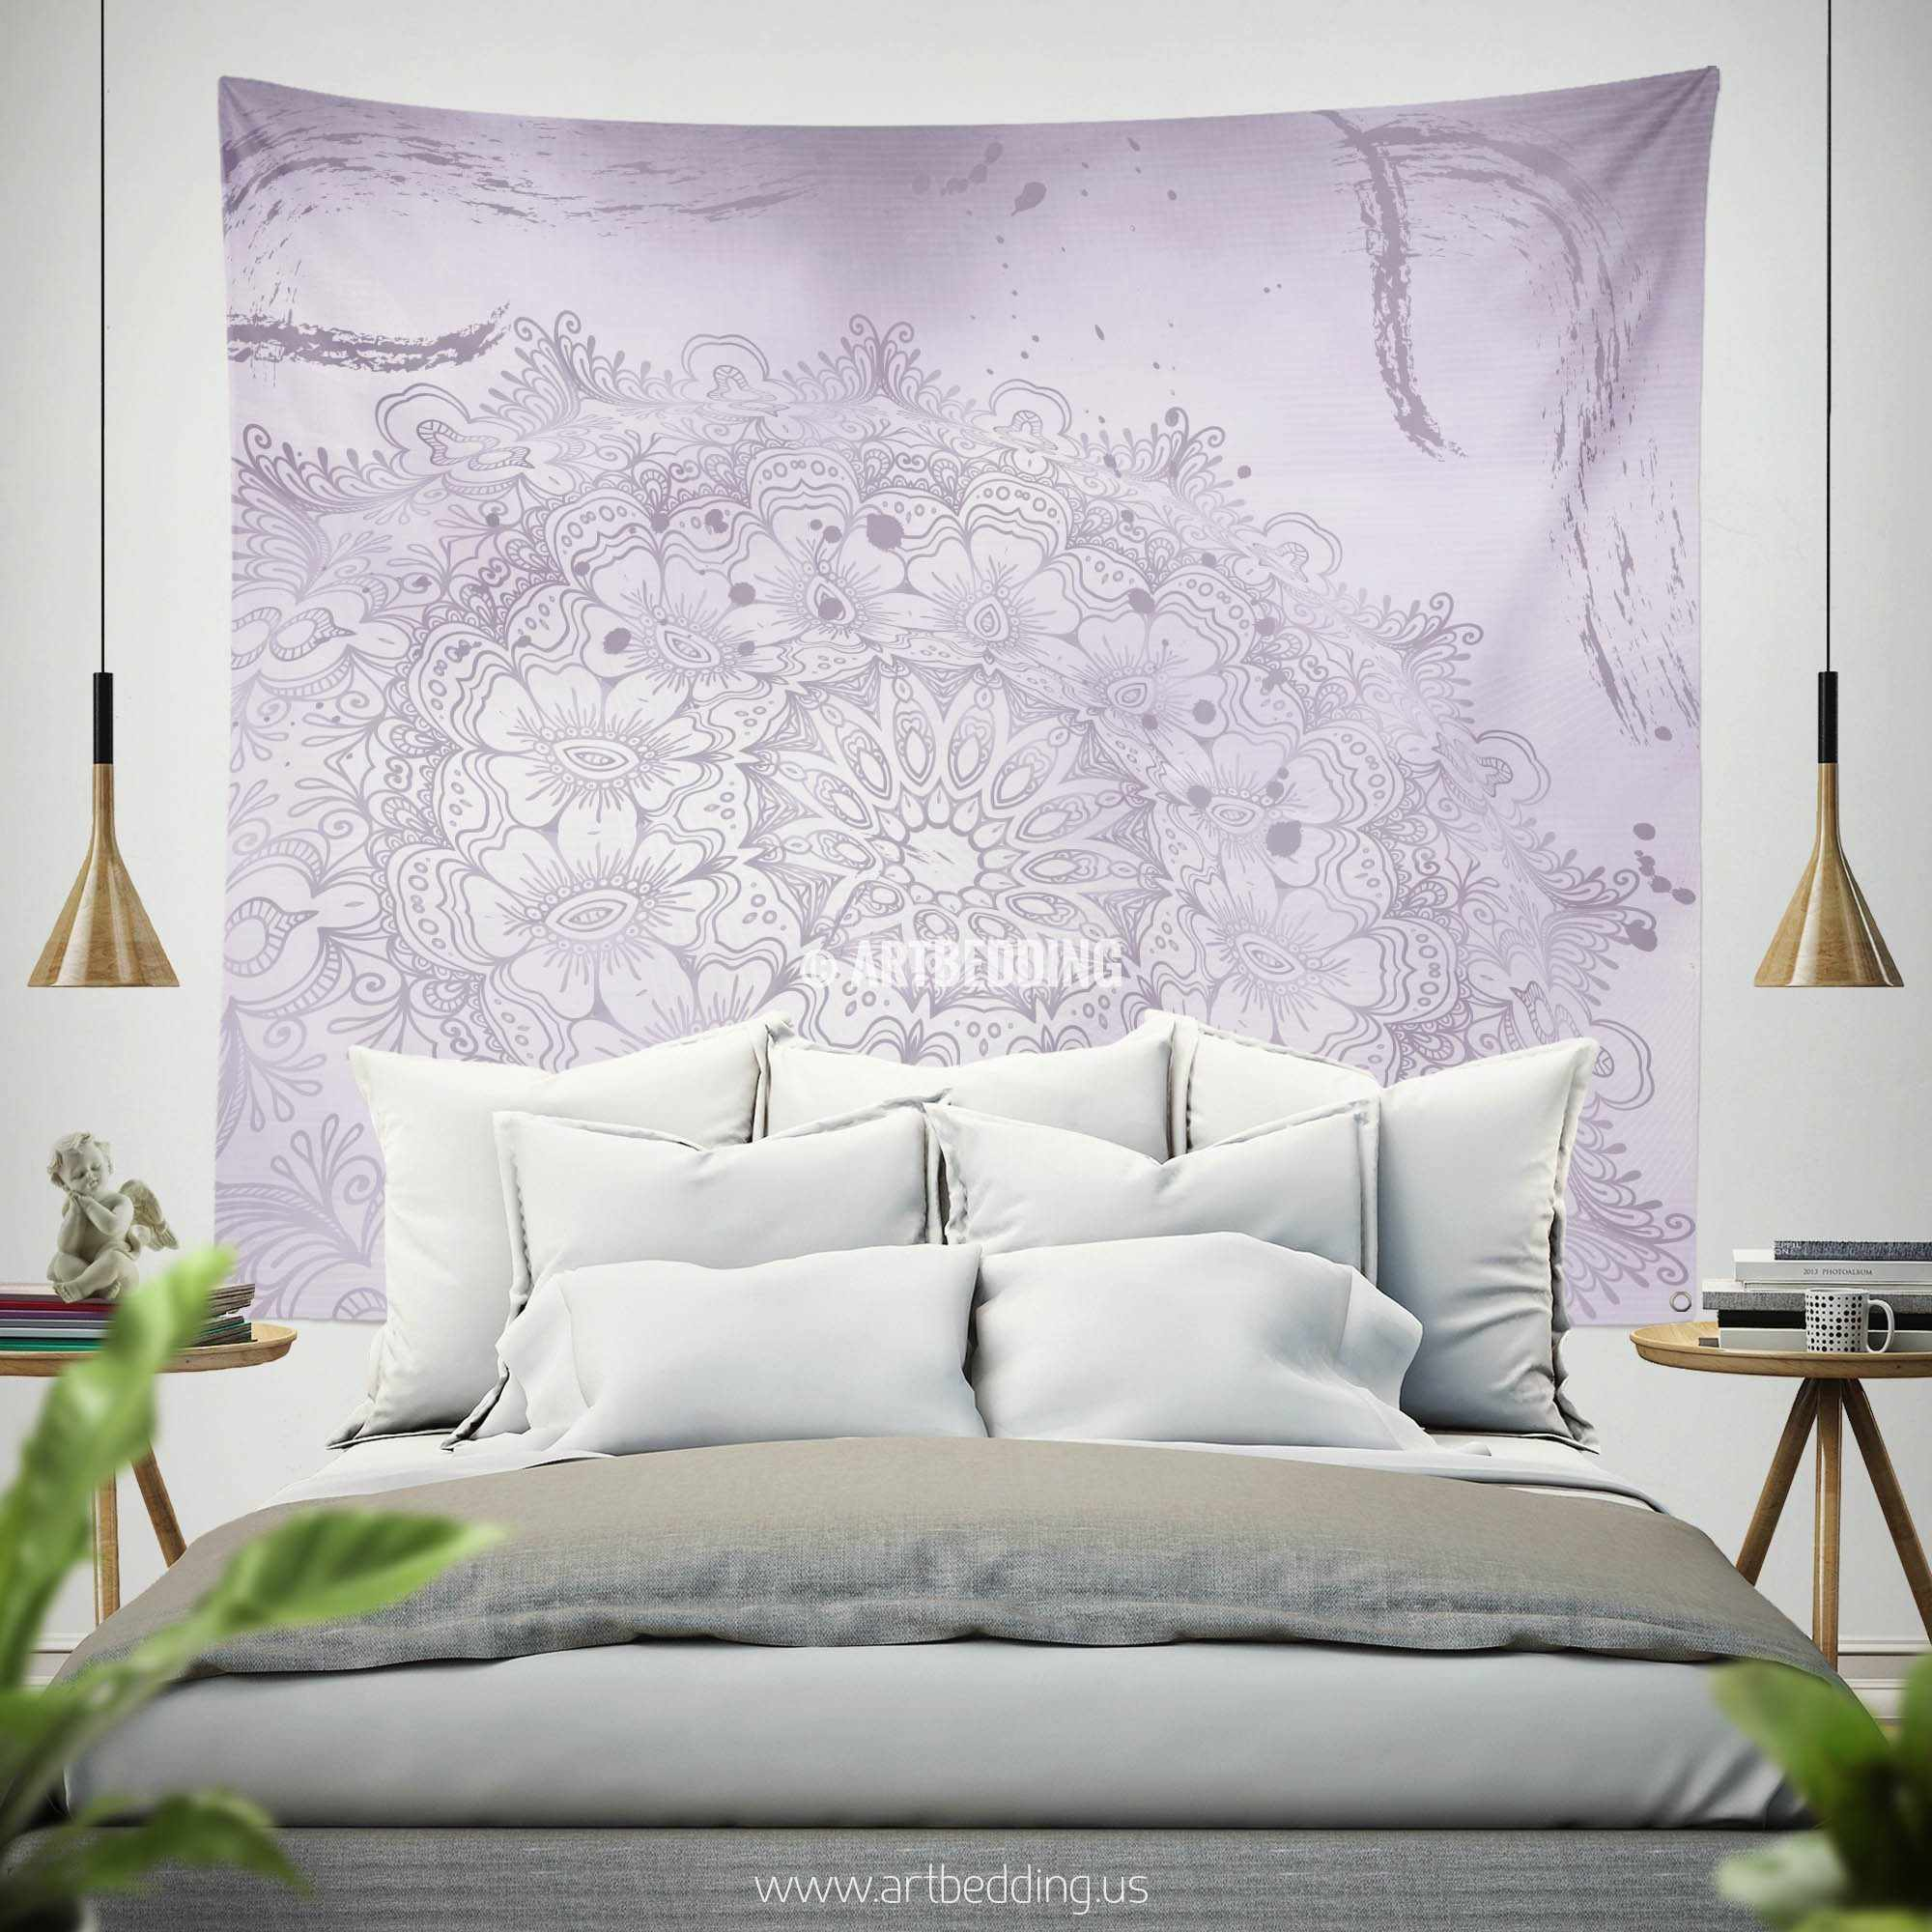 ... Bohemian TAPESTRY, Lavender Purple Mehendi Henna Tattoo Style Wall Art  Print, Boho Wall Decor ...